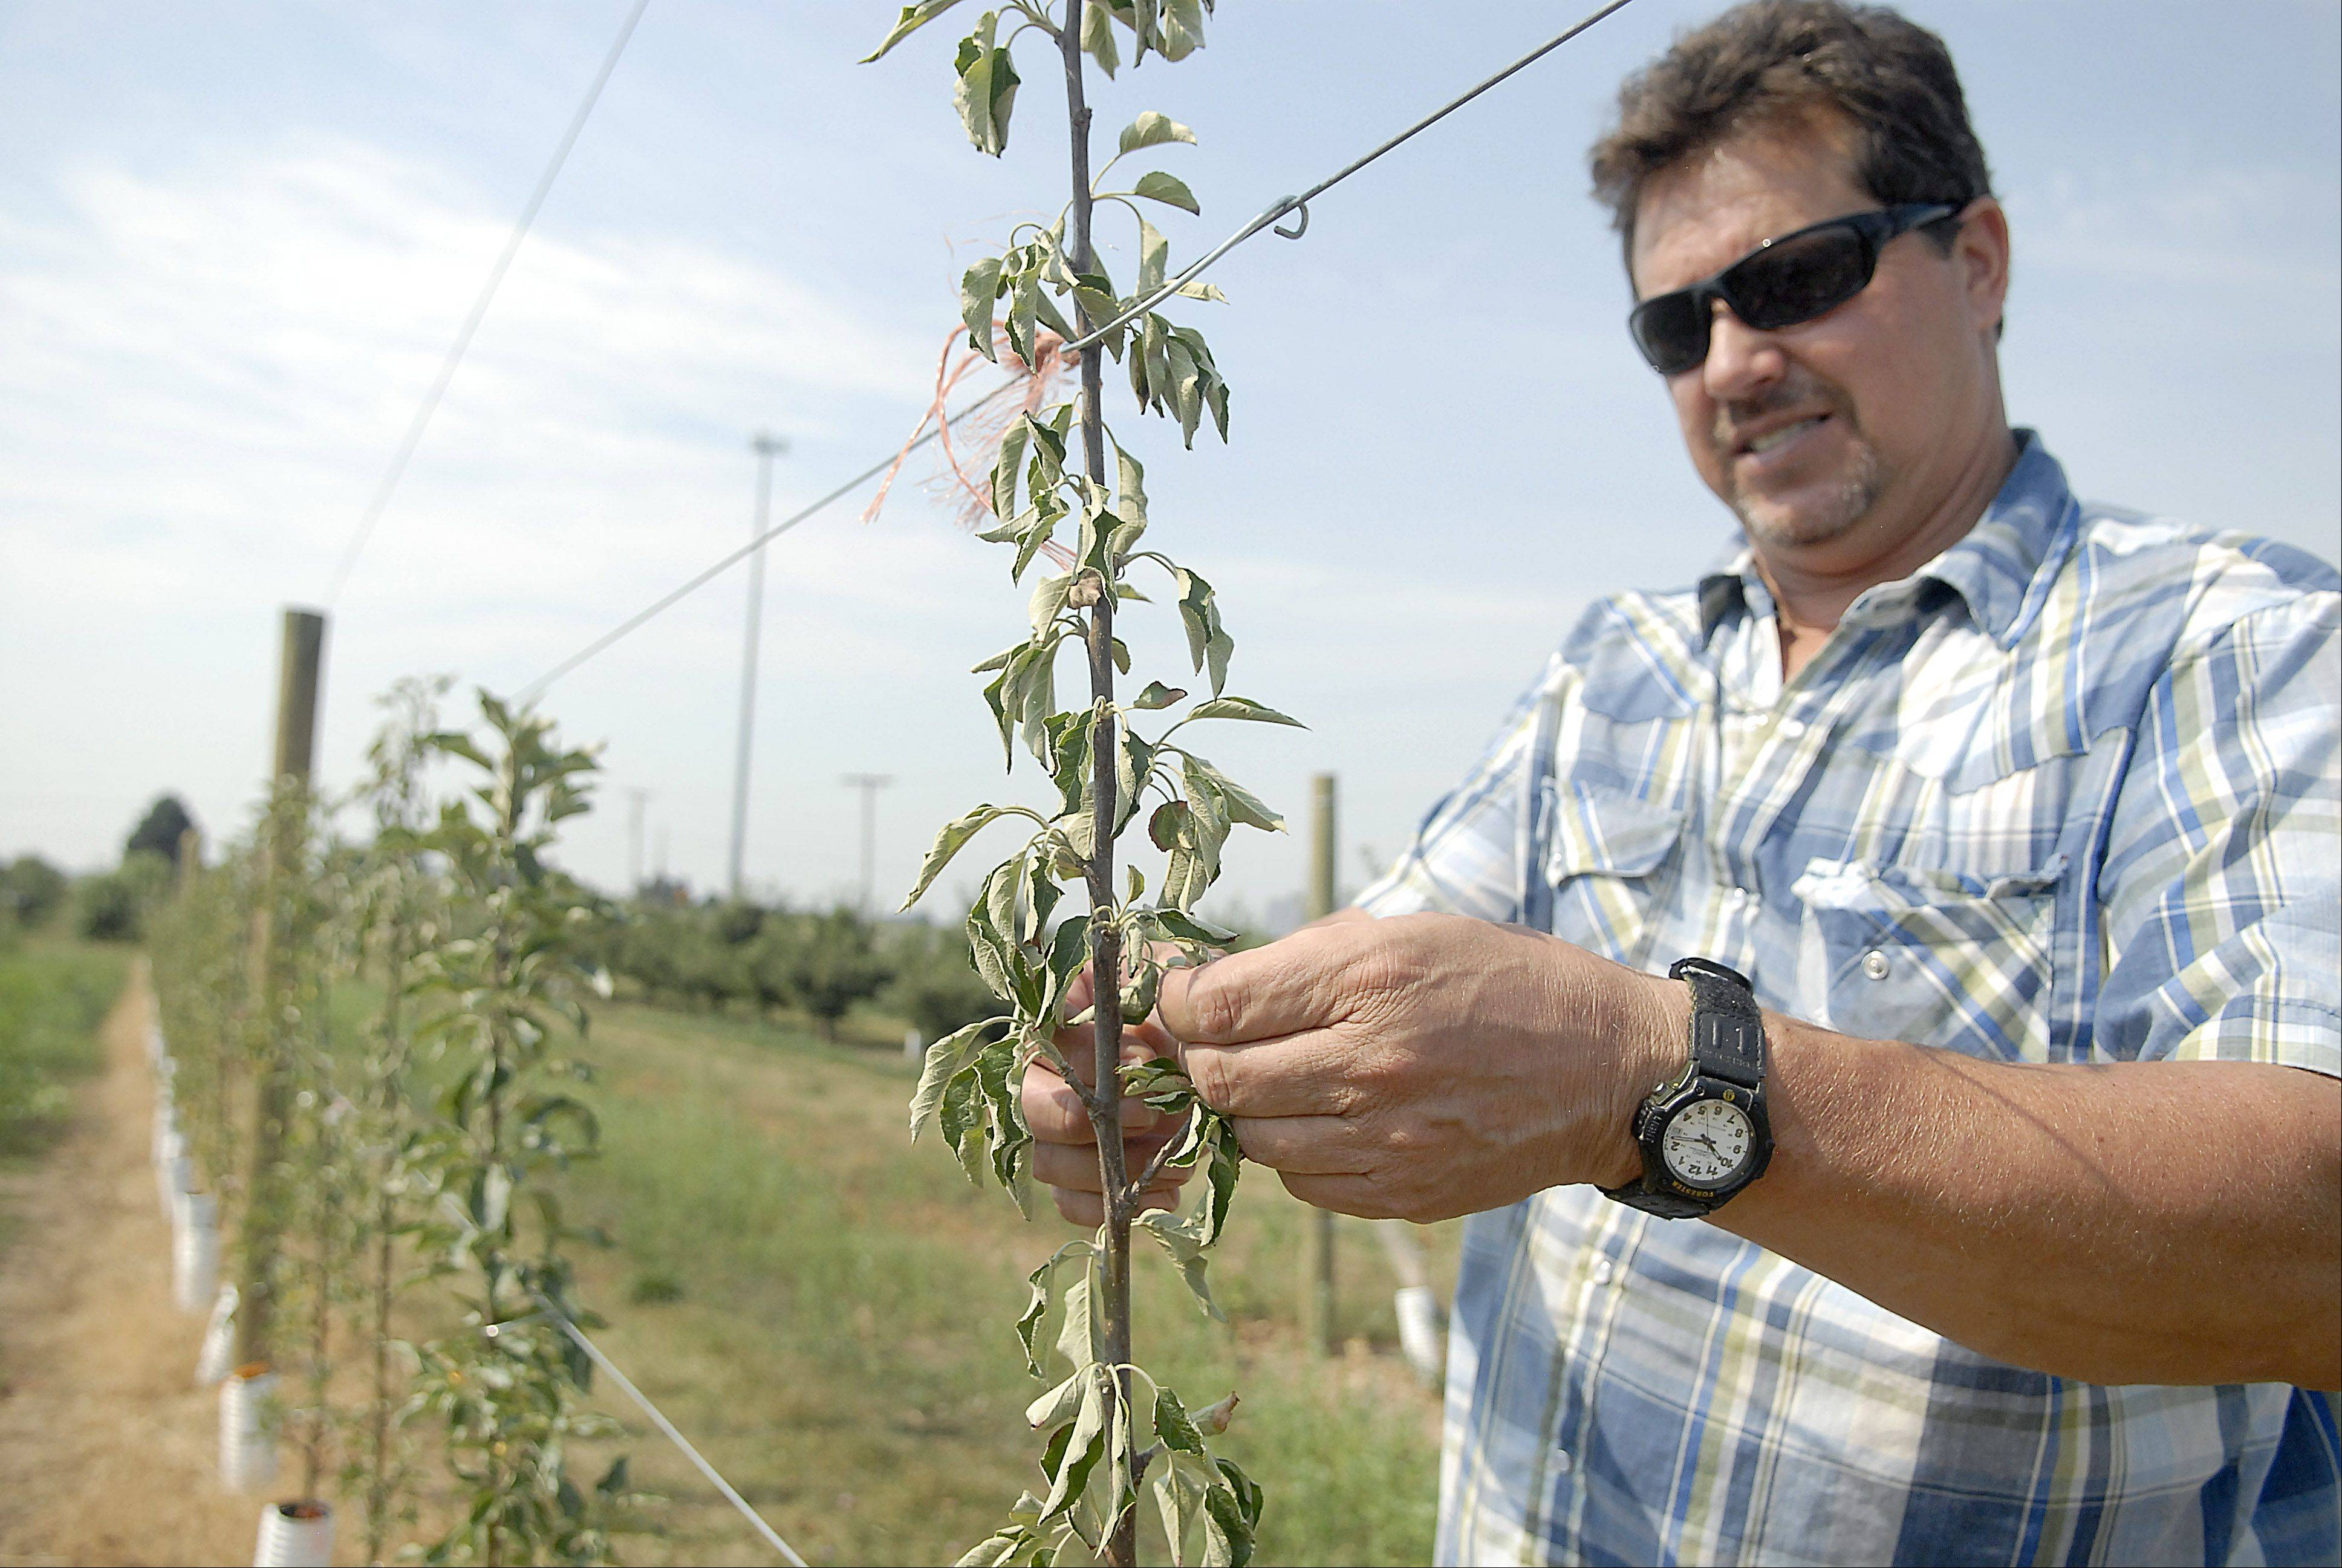 Wade Kuiper of Kuipers Family Farm checks on apple trees in his orchard in Maple Park.